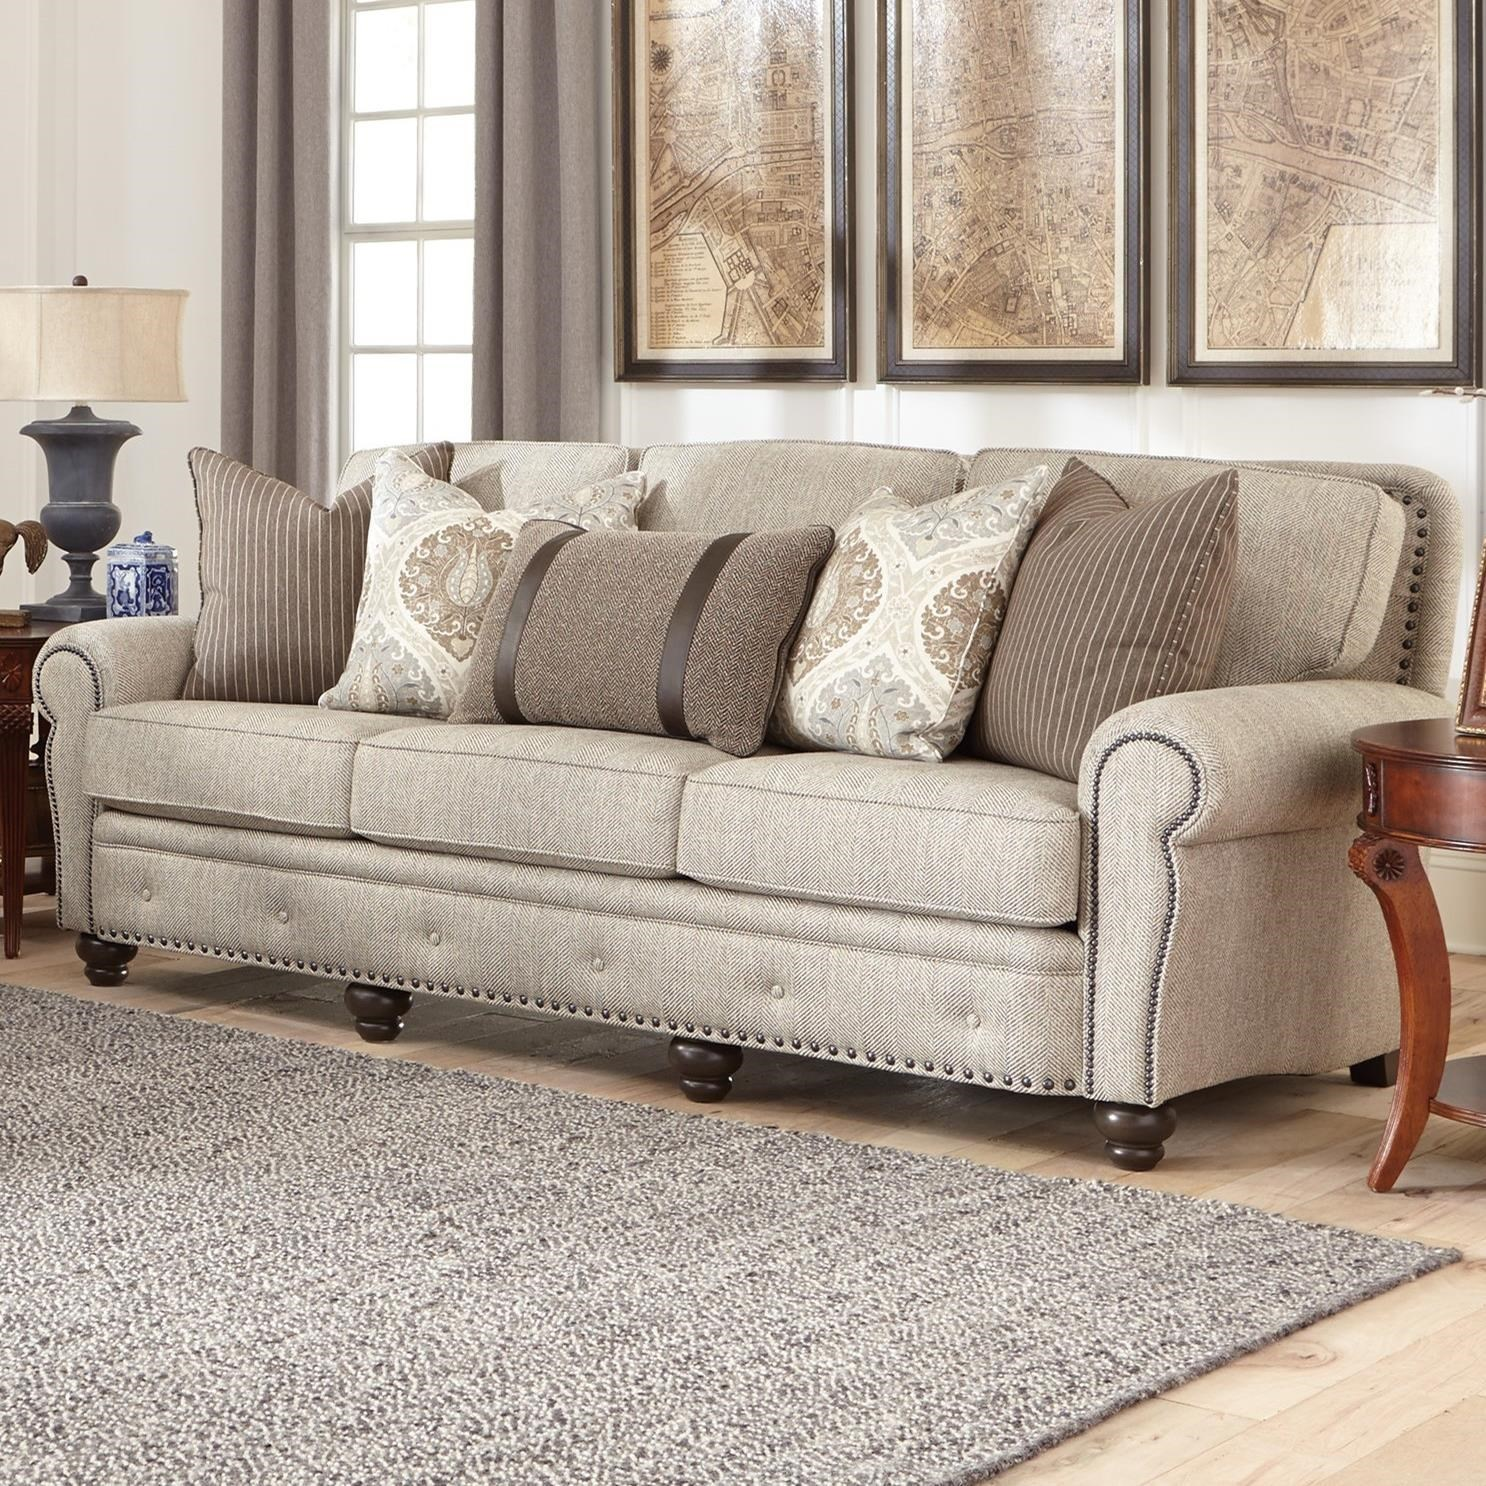 smith brothers 237 traditional large sofa with nailhead trim - Large Sofas